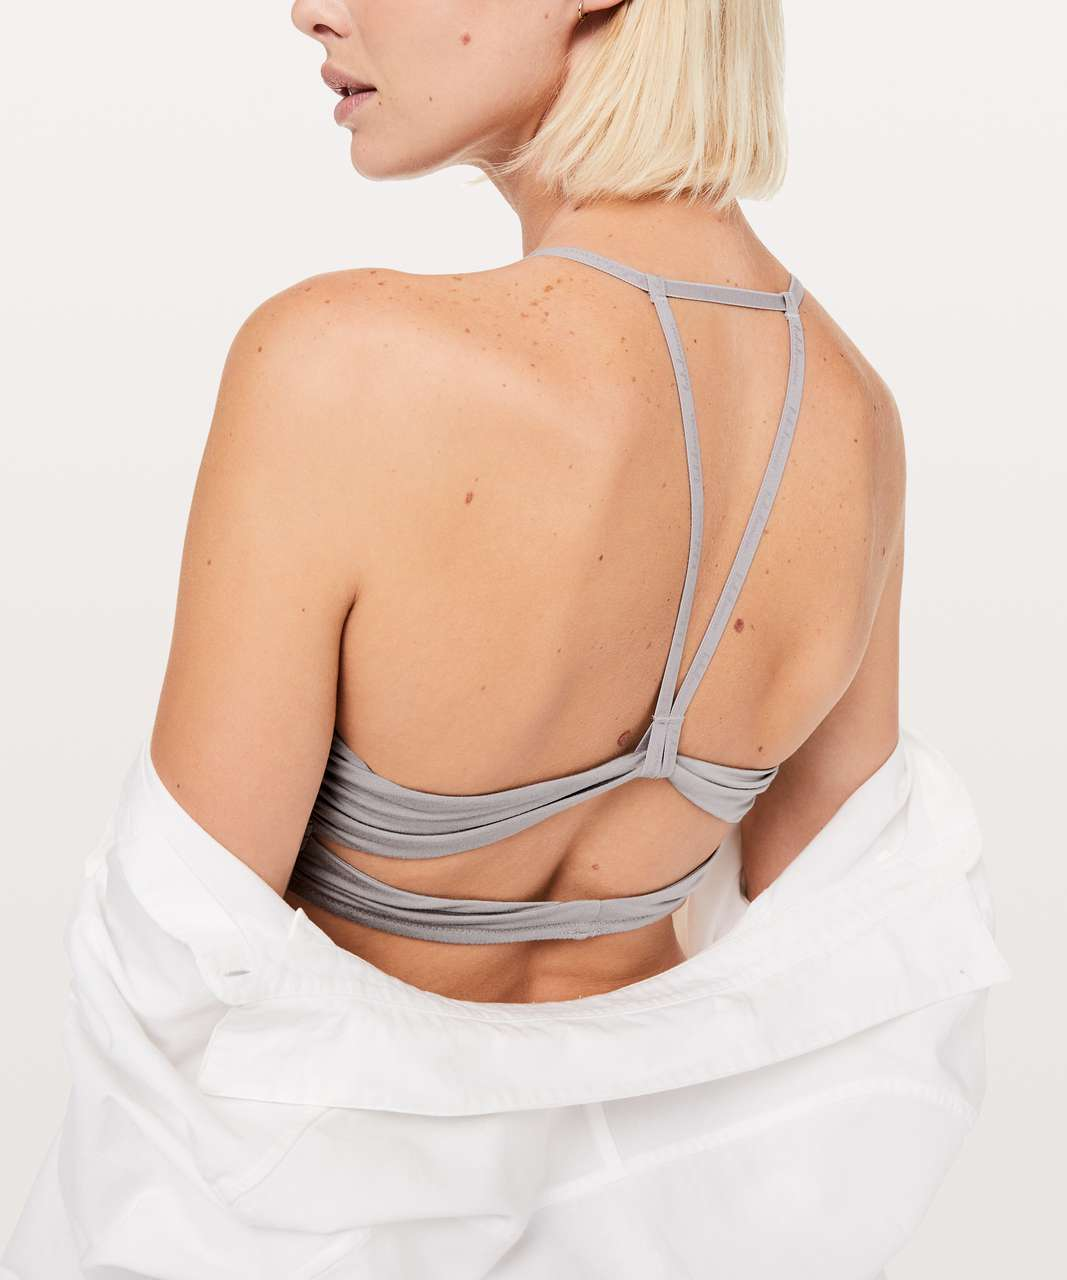 Lululemon Simply There Bralette - Dark Chrome